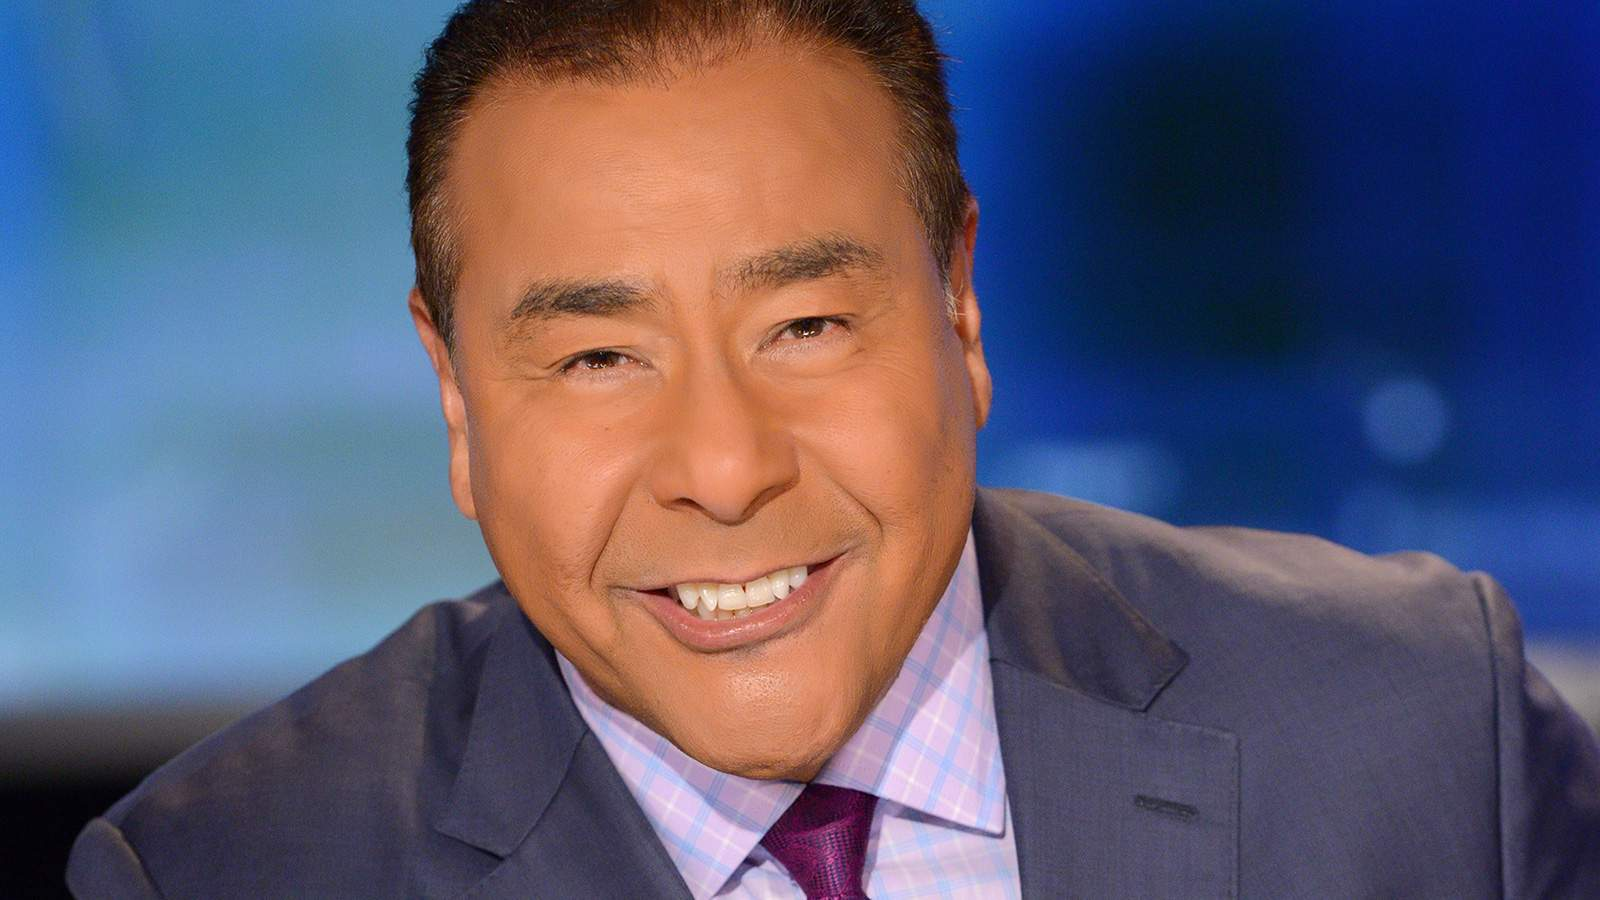 John Quiñones smiling on a TV news set